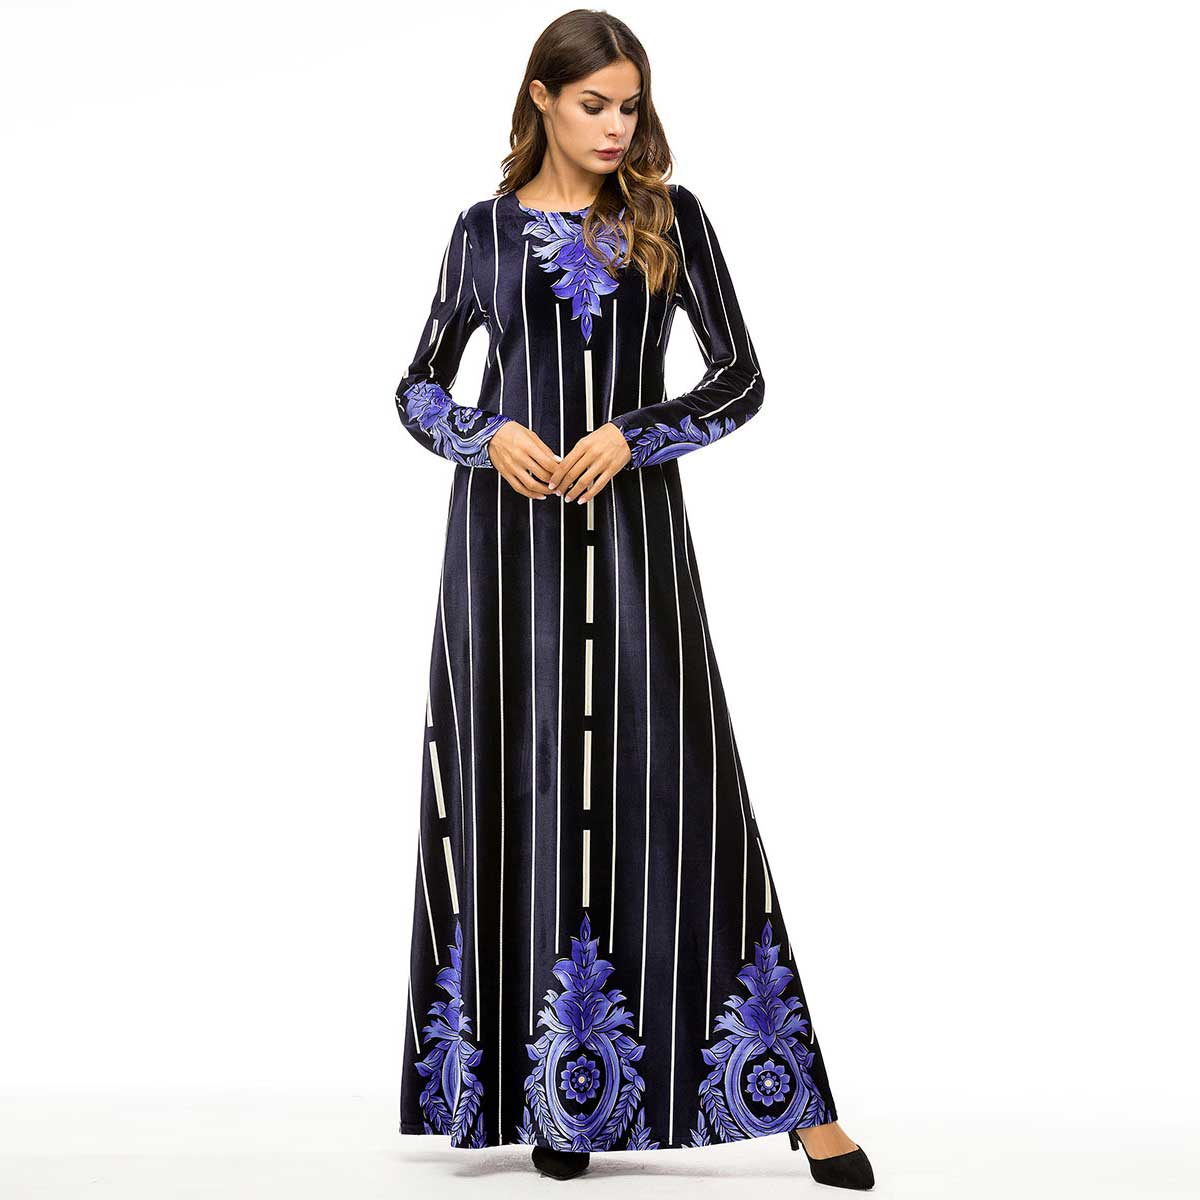 2019 brand women floral print velvet abaya oversized maxi dress Autumn winter Muslim Arabic Dubai Ramadan islamic robe VKDR1410-in Islamic Clothing from Novelty & Special Use on Aliexpress.com | Alibaba Group